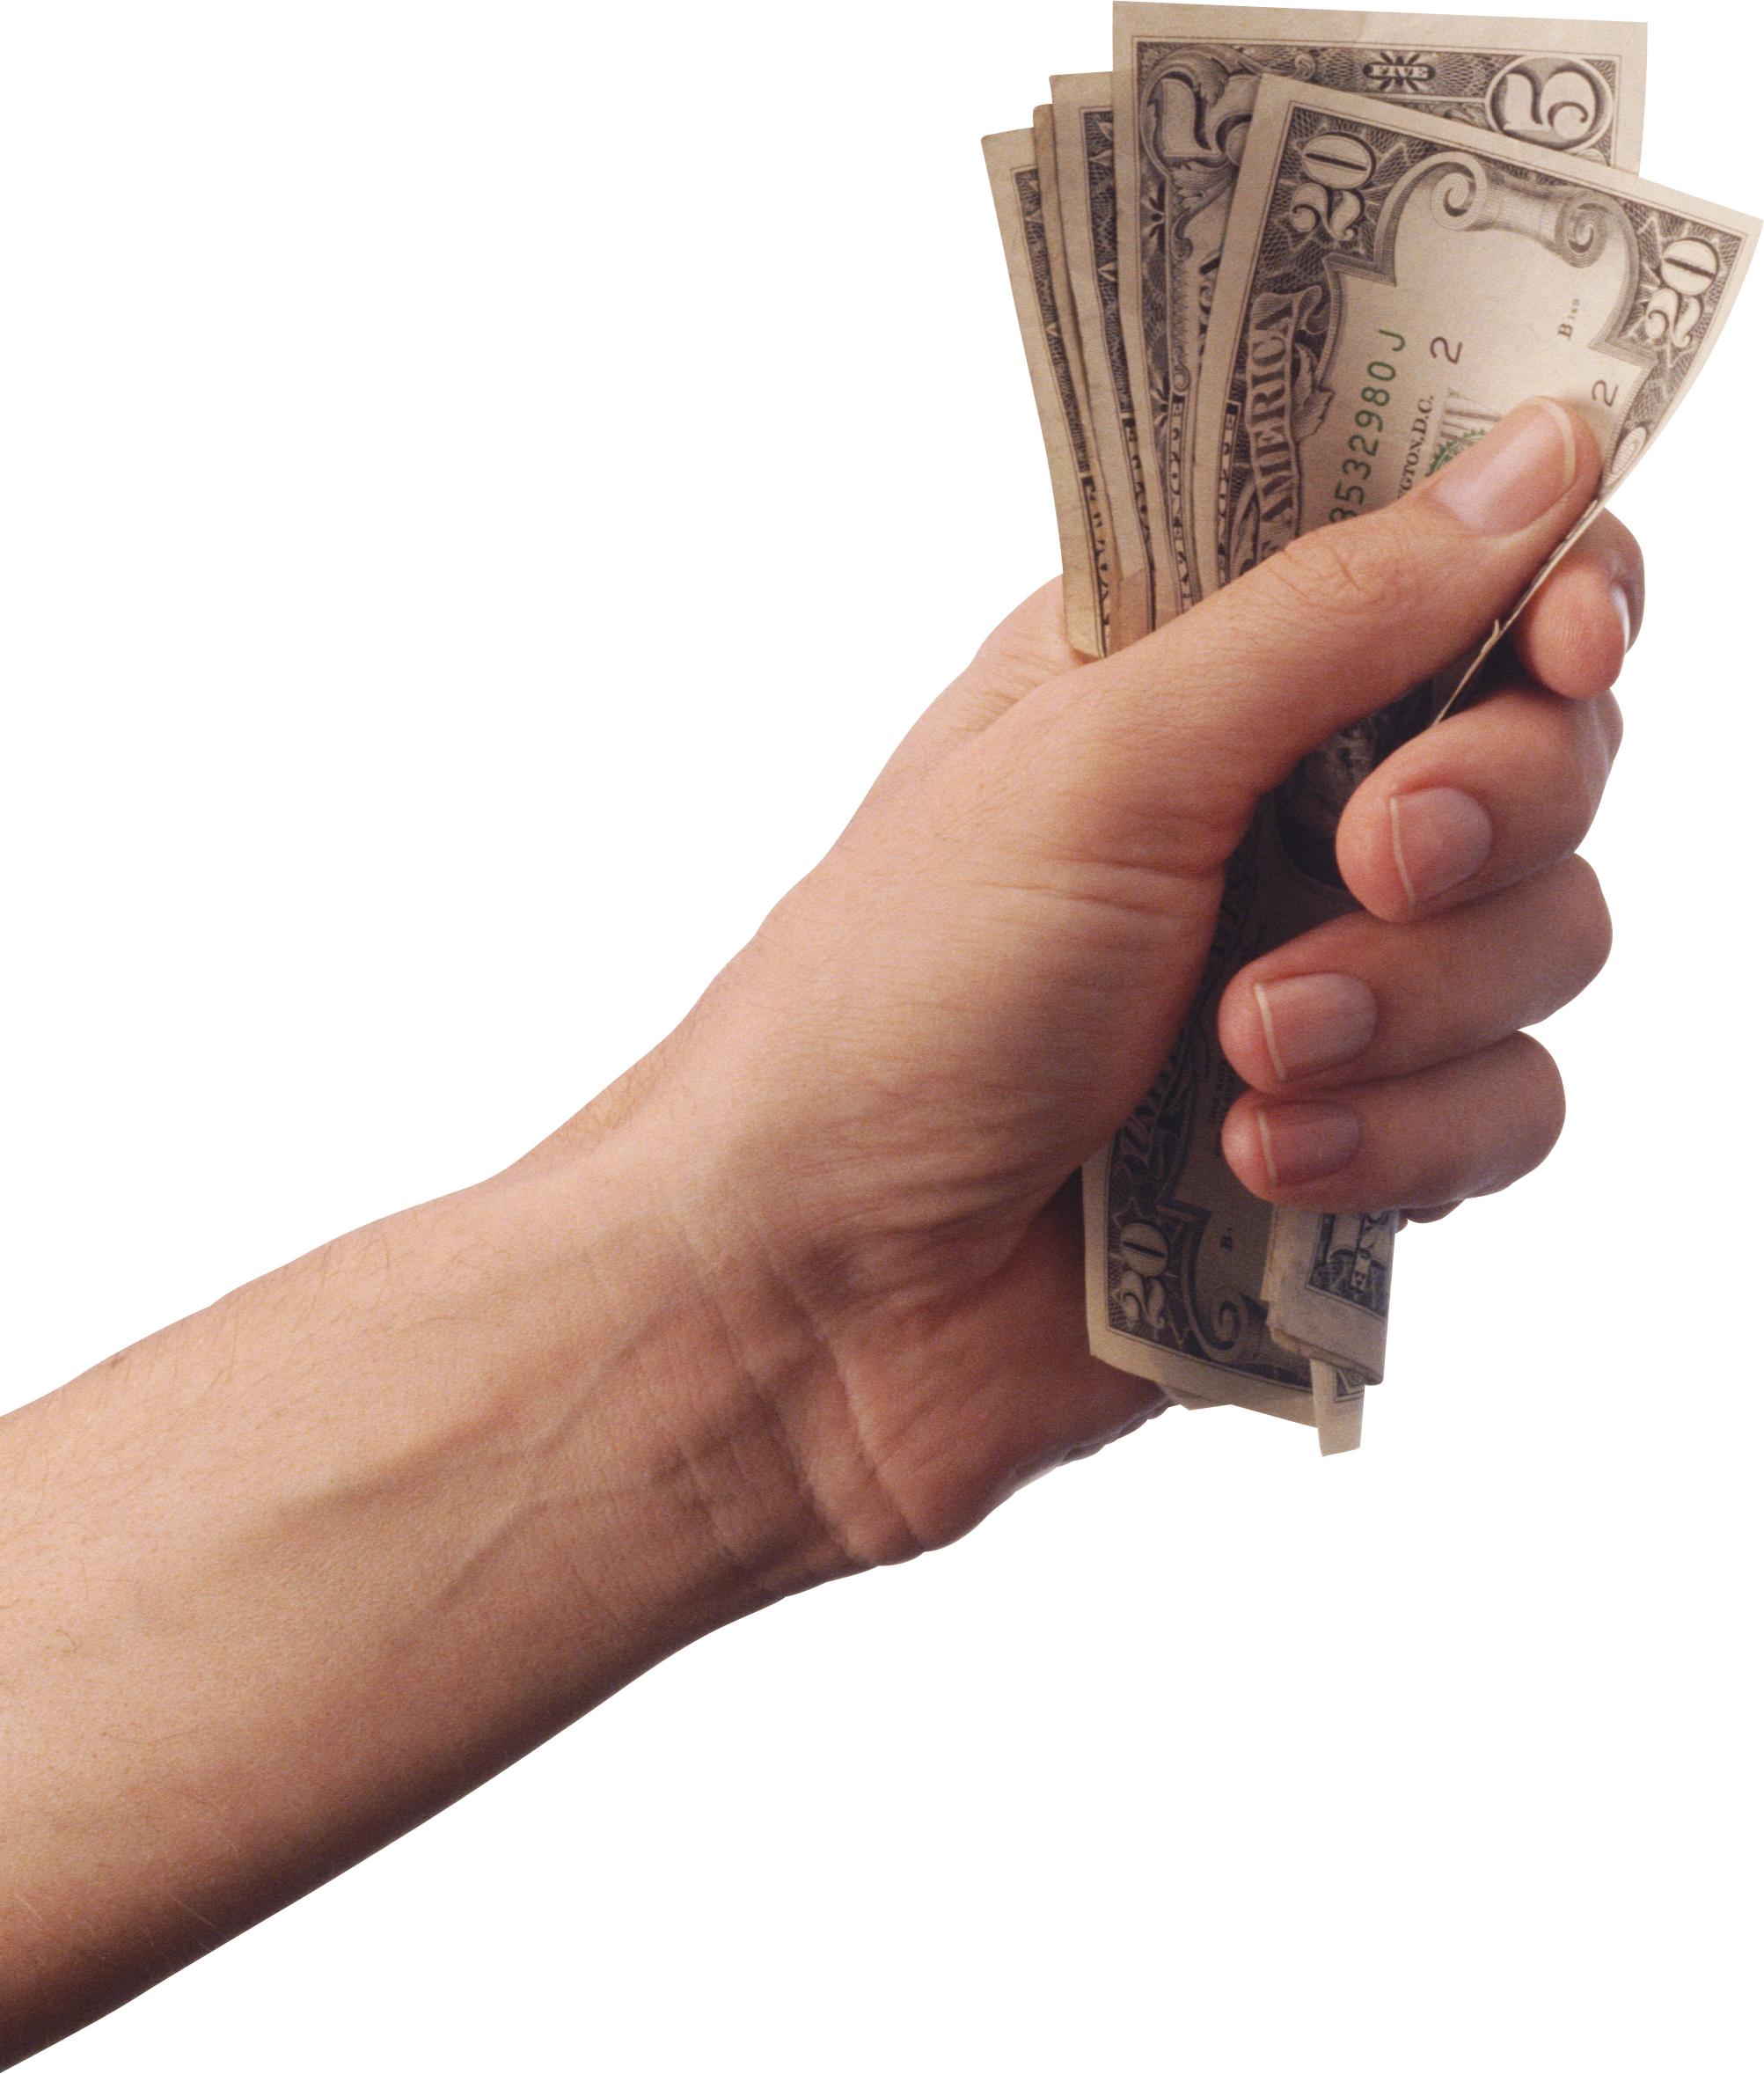 Hand holding three isolated. Economy clipart money donation